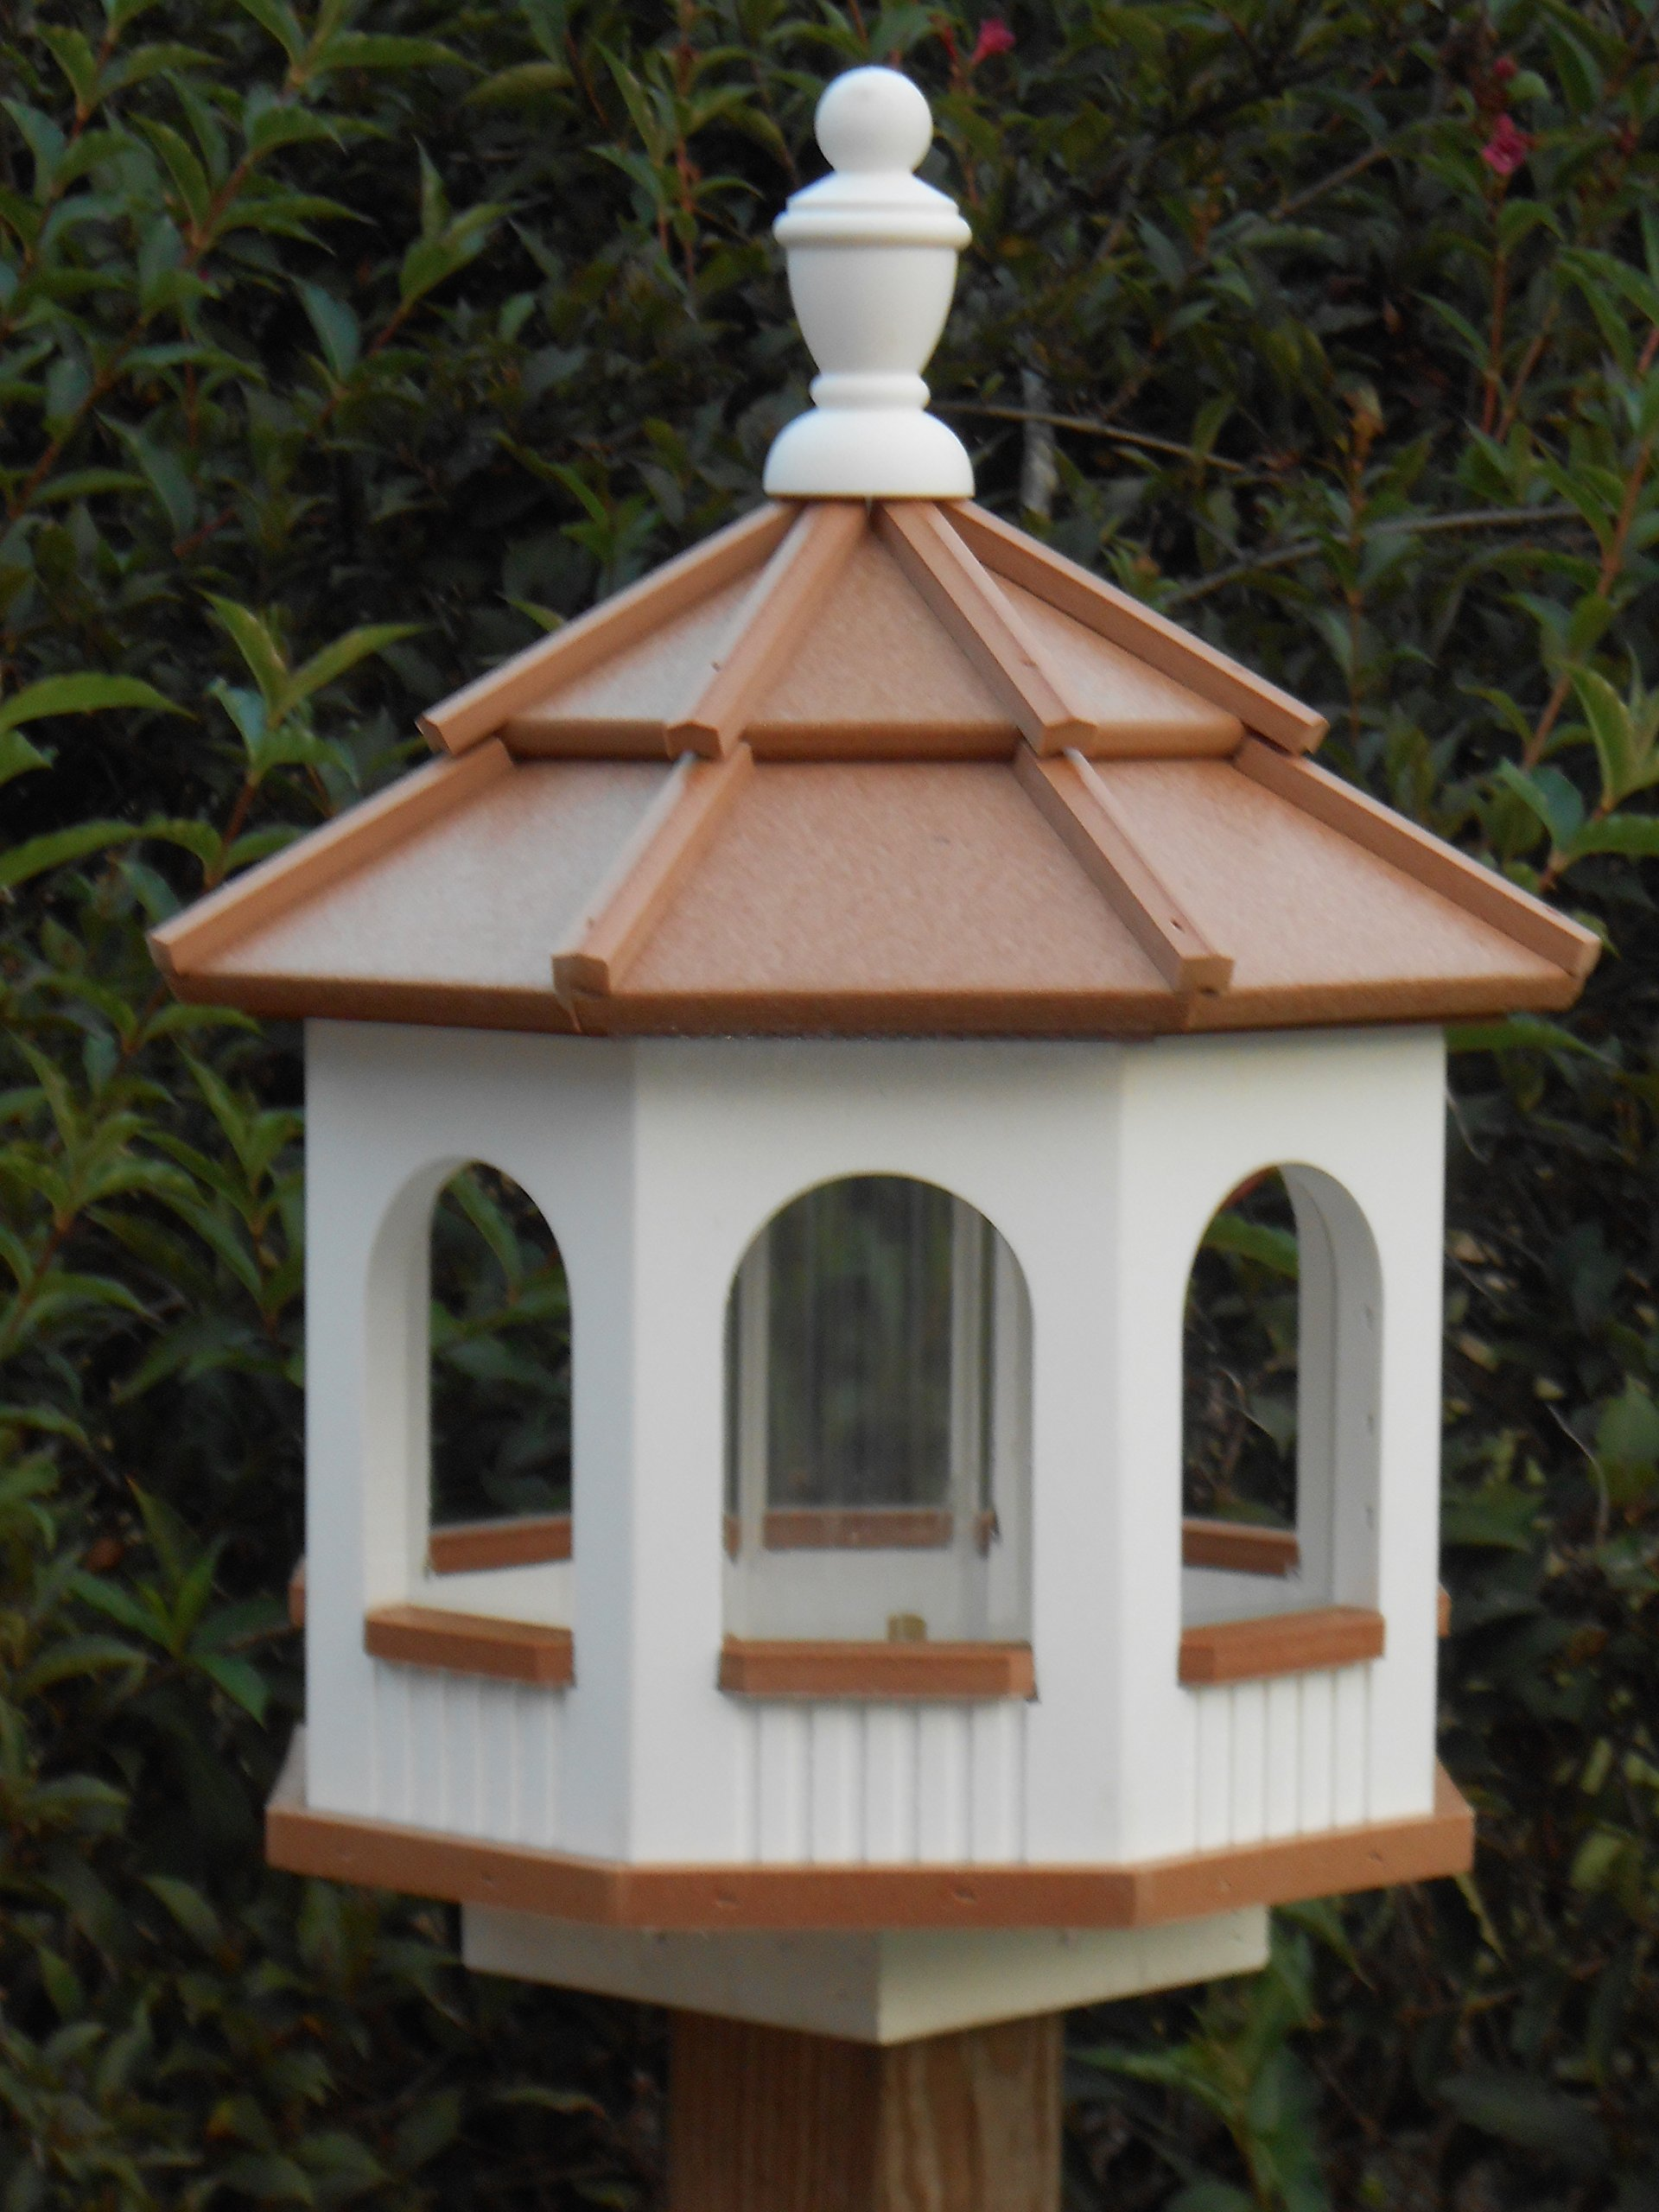 Vinyl Gazebo Bird Feeder Amish Homemade Handmade Handcrafted White & Cedar med by Amish Crafted